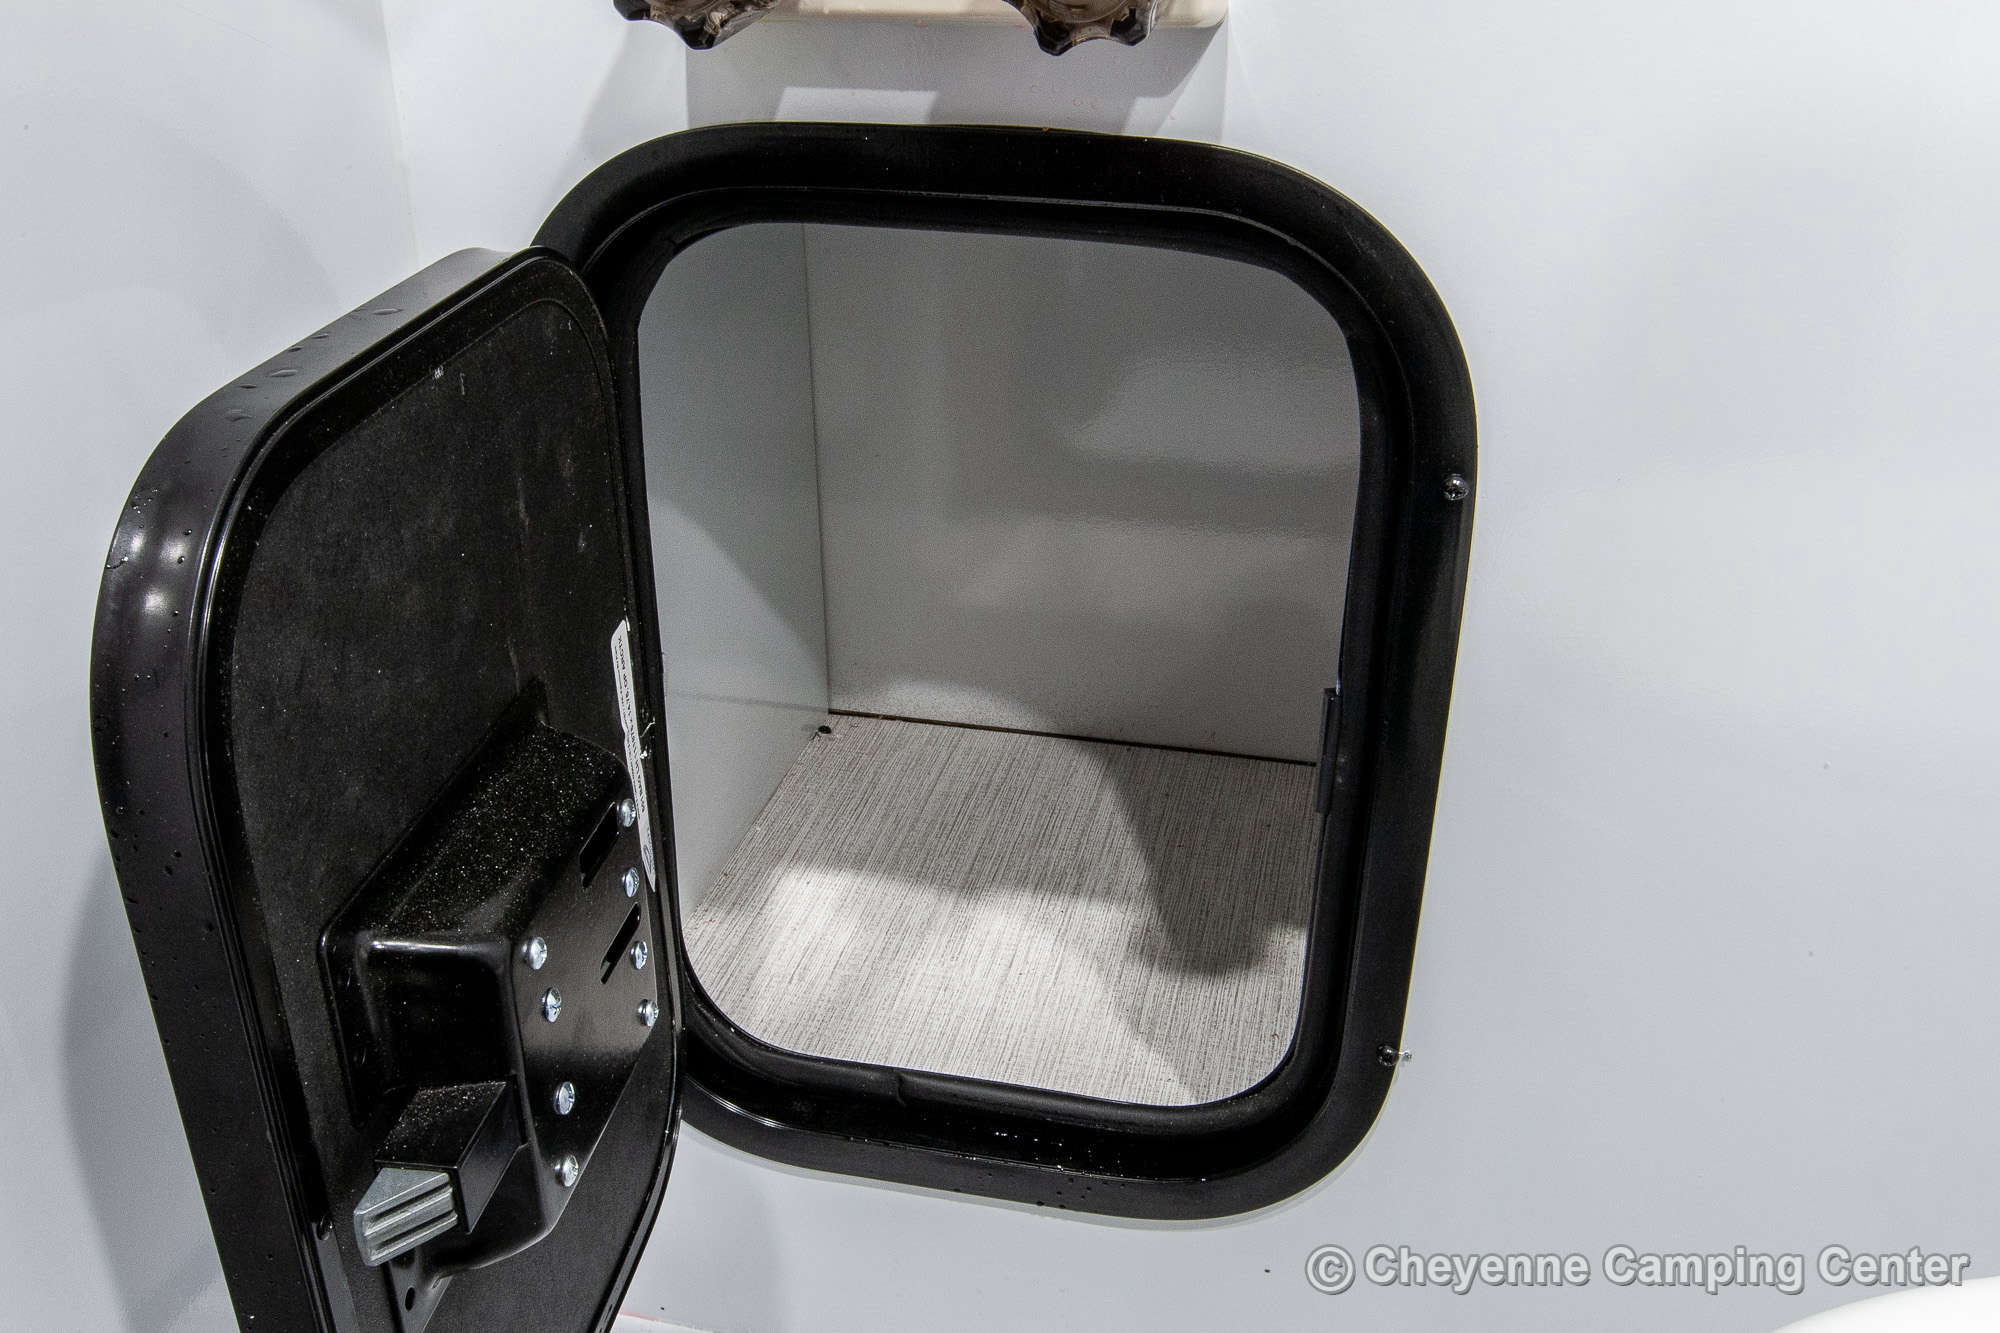 2021 Palomino BackPack SS-1251 Truck Camper Interior Image